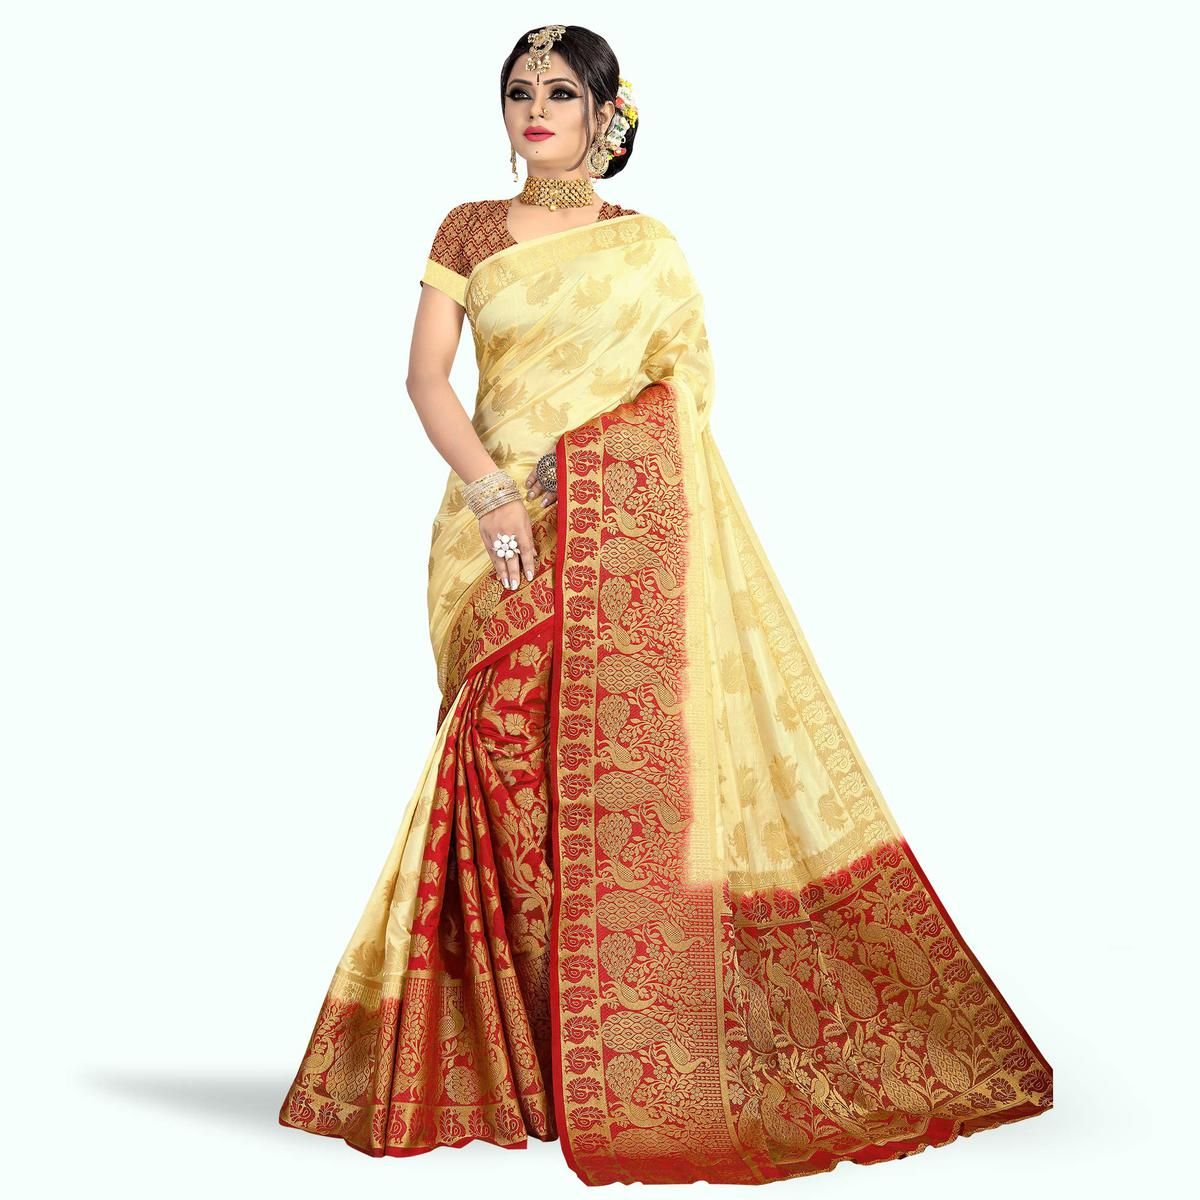 Engrossing Red - Cream Colored Festive Wear Tussar Silk Saree